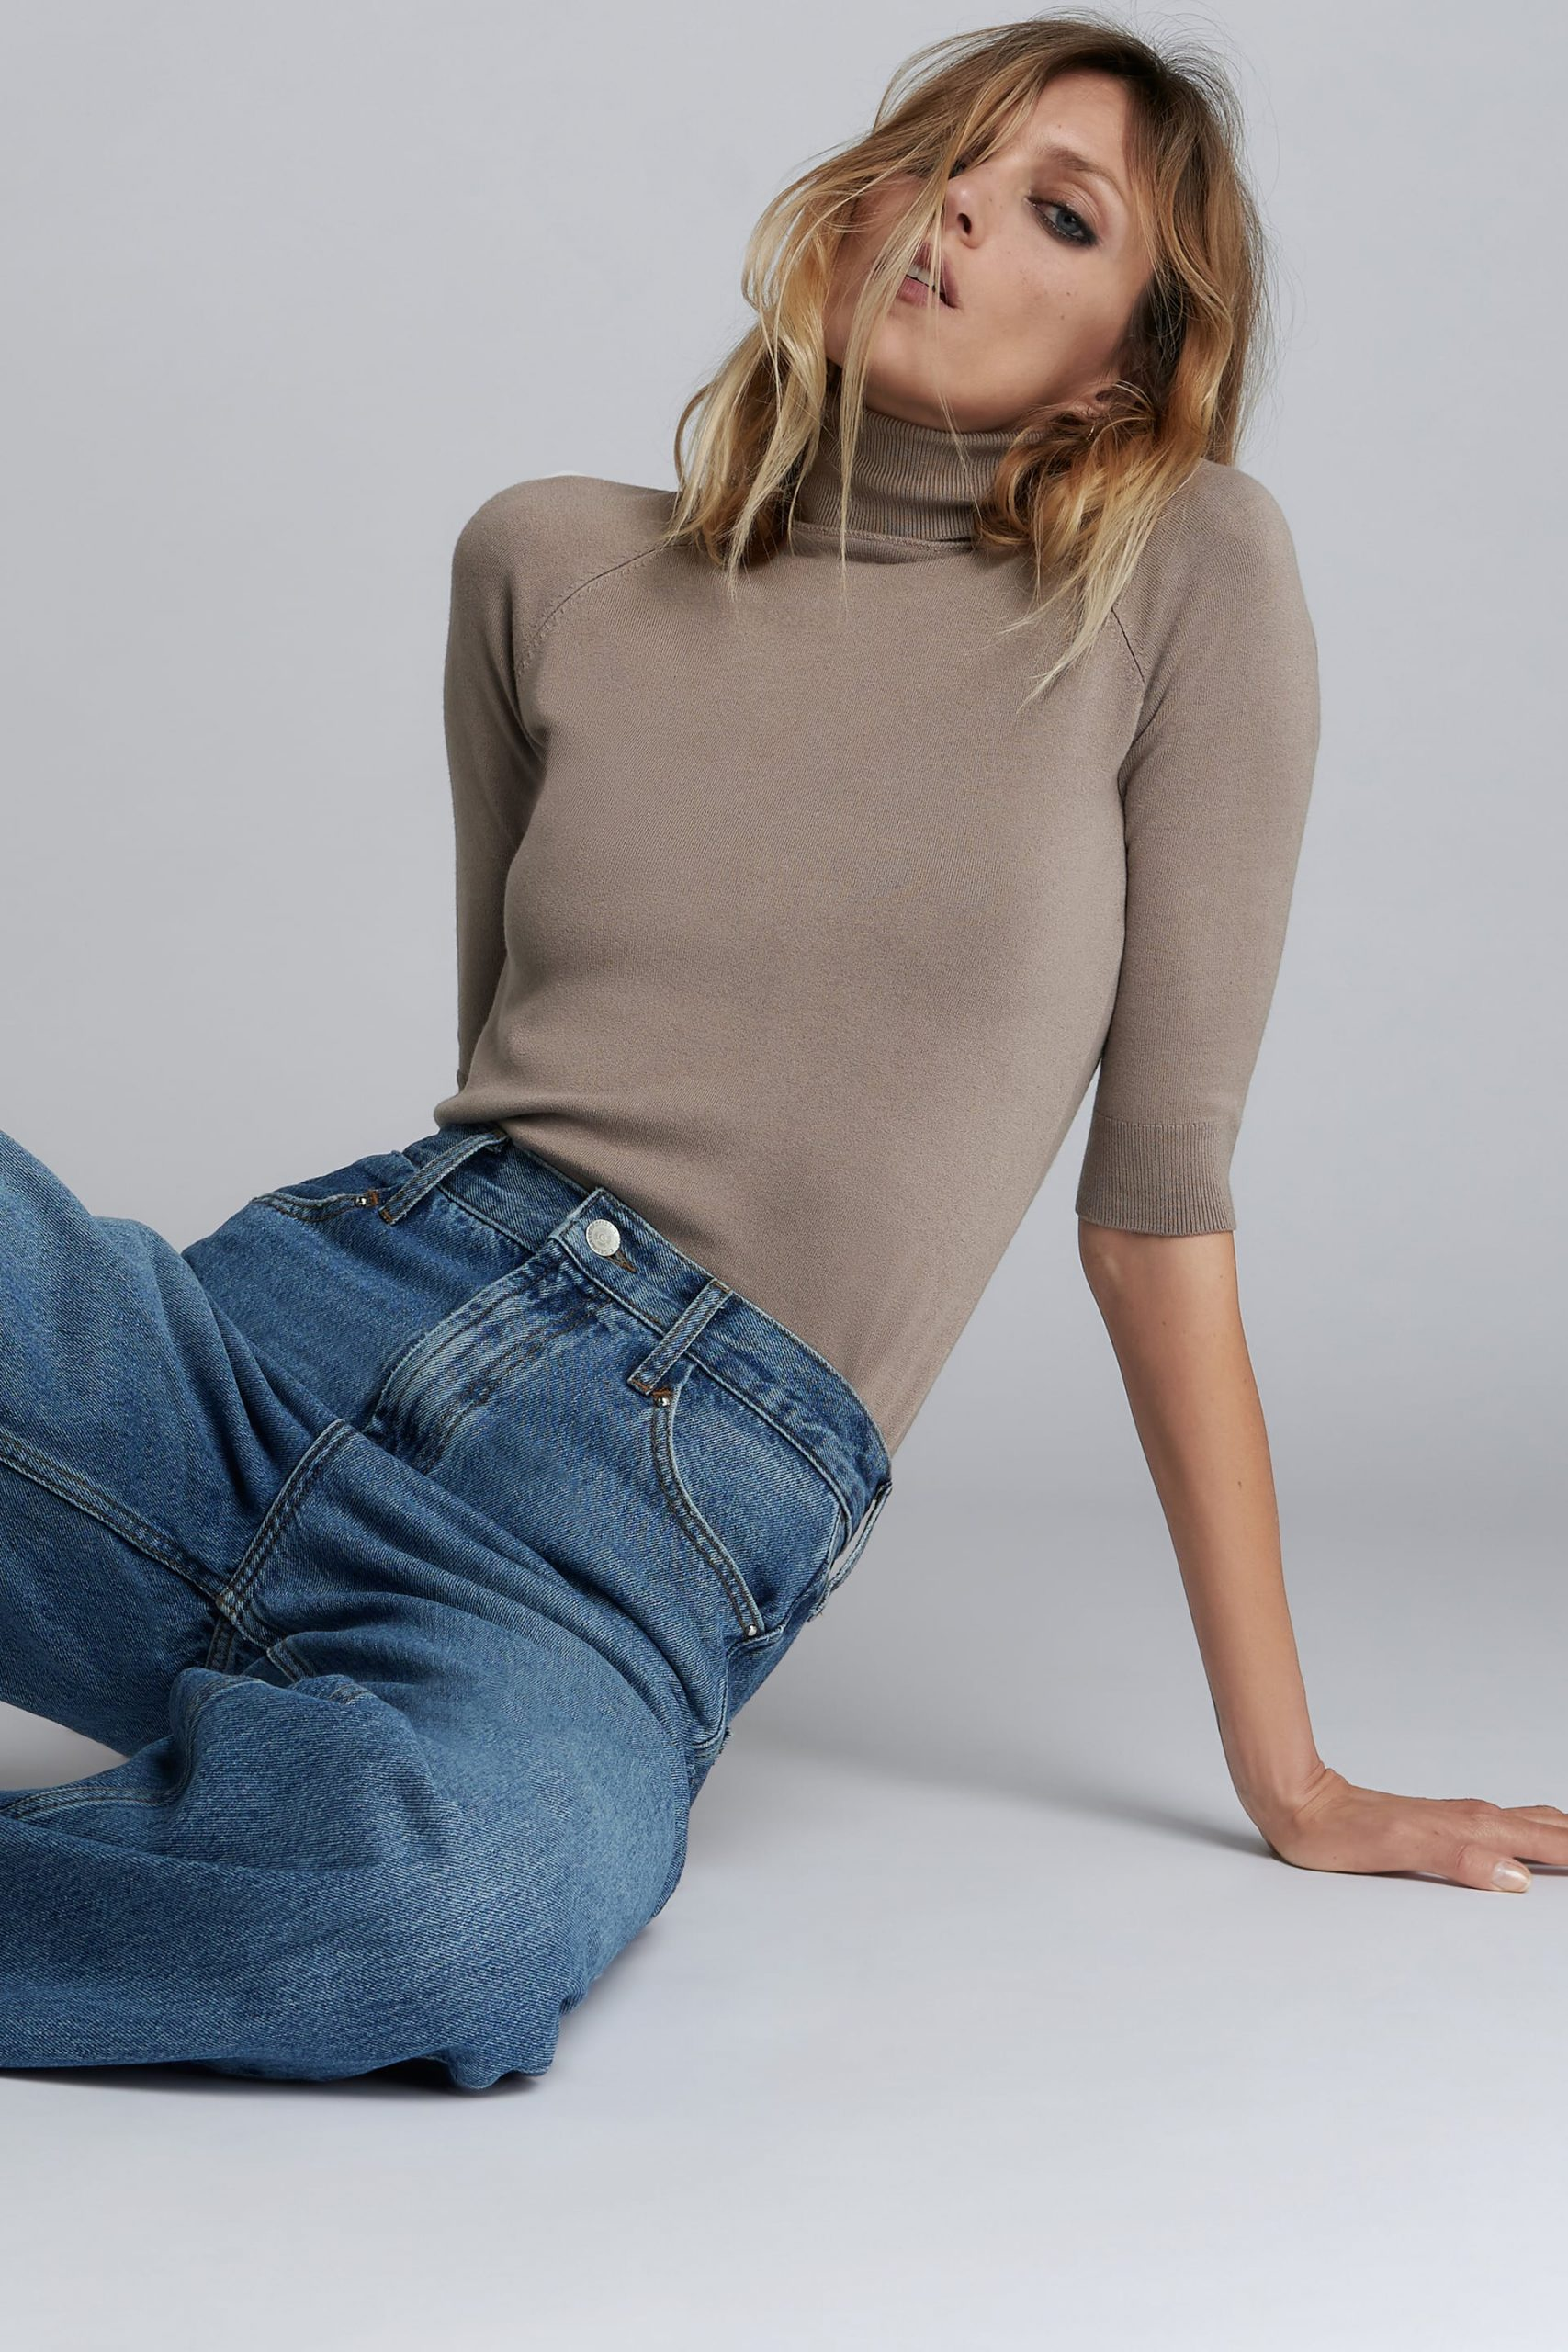 Knit Sweater is the best item for fall